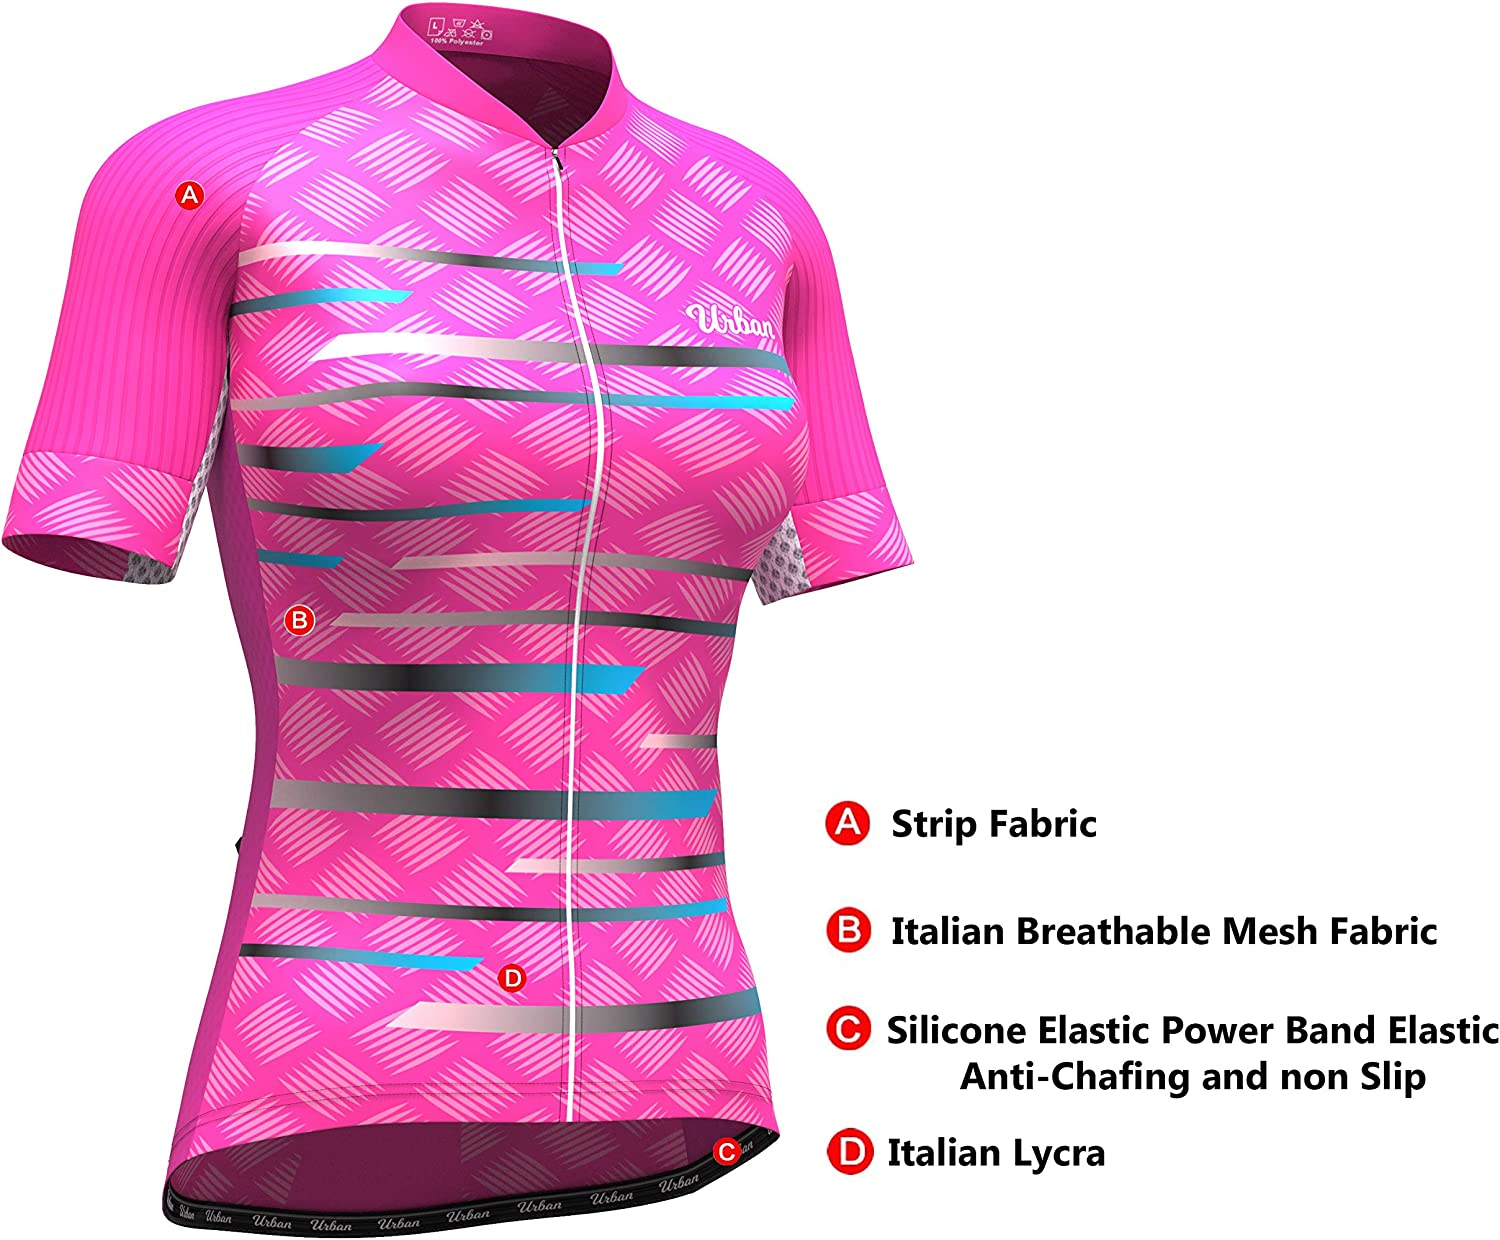 KJX4604 Women/'s Mtb Bicycle Riding Cycling Short Sleeve Jersey Bib Shorts Sport